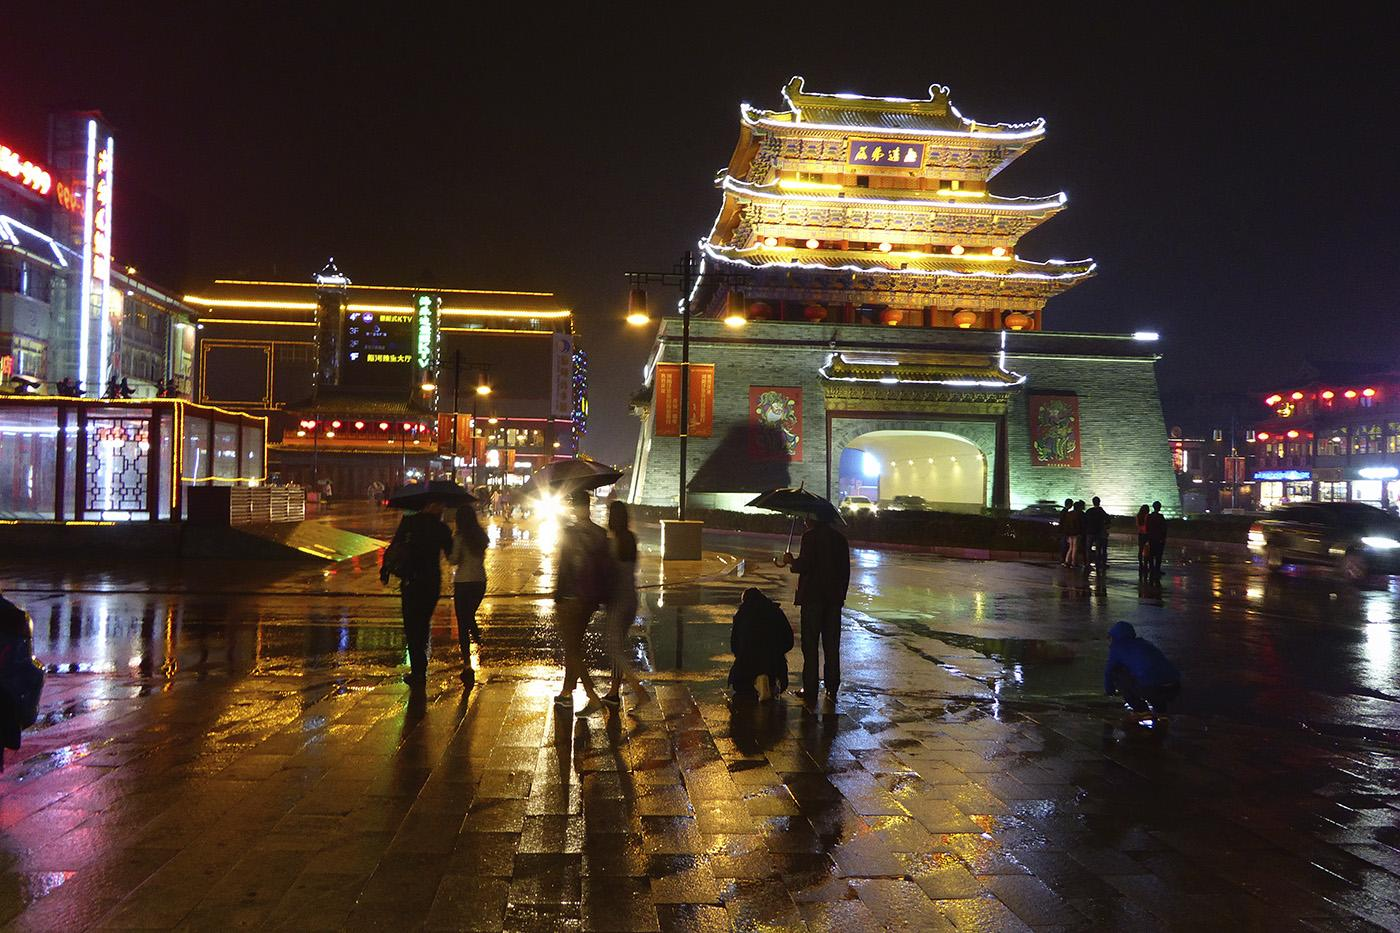 Night time near the Drum Tower in Kaifeng. Photo: Mick Duffield